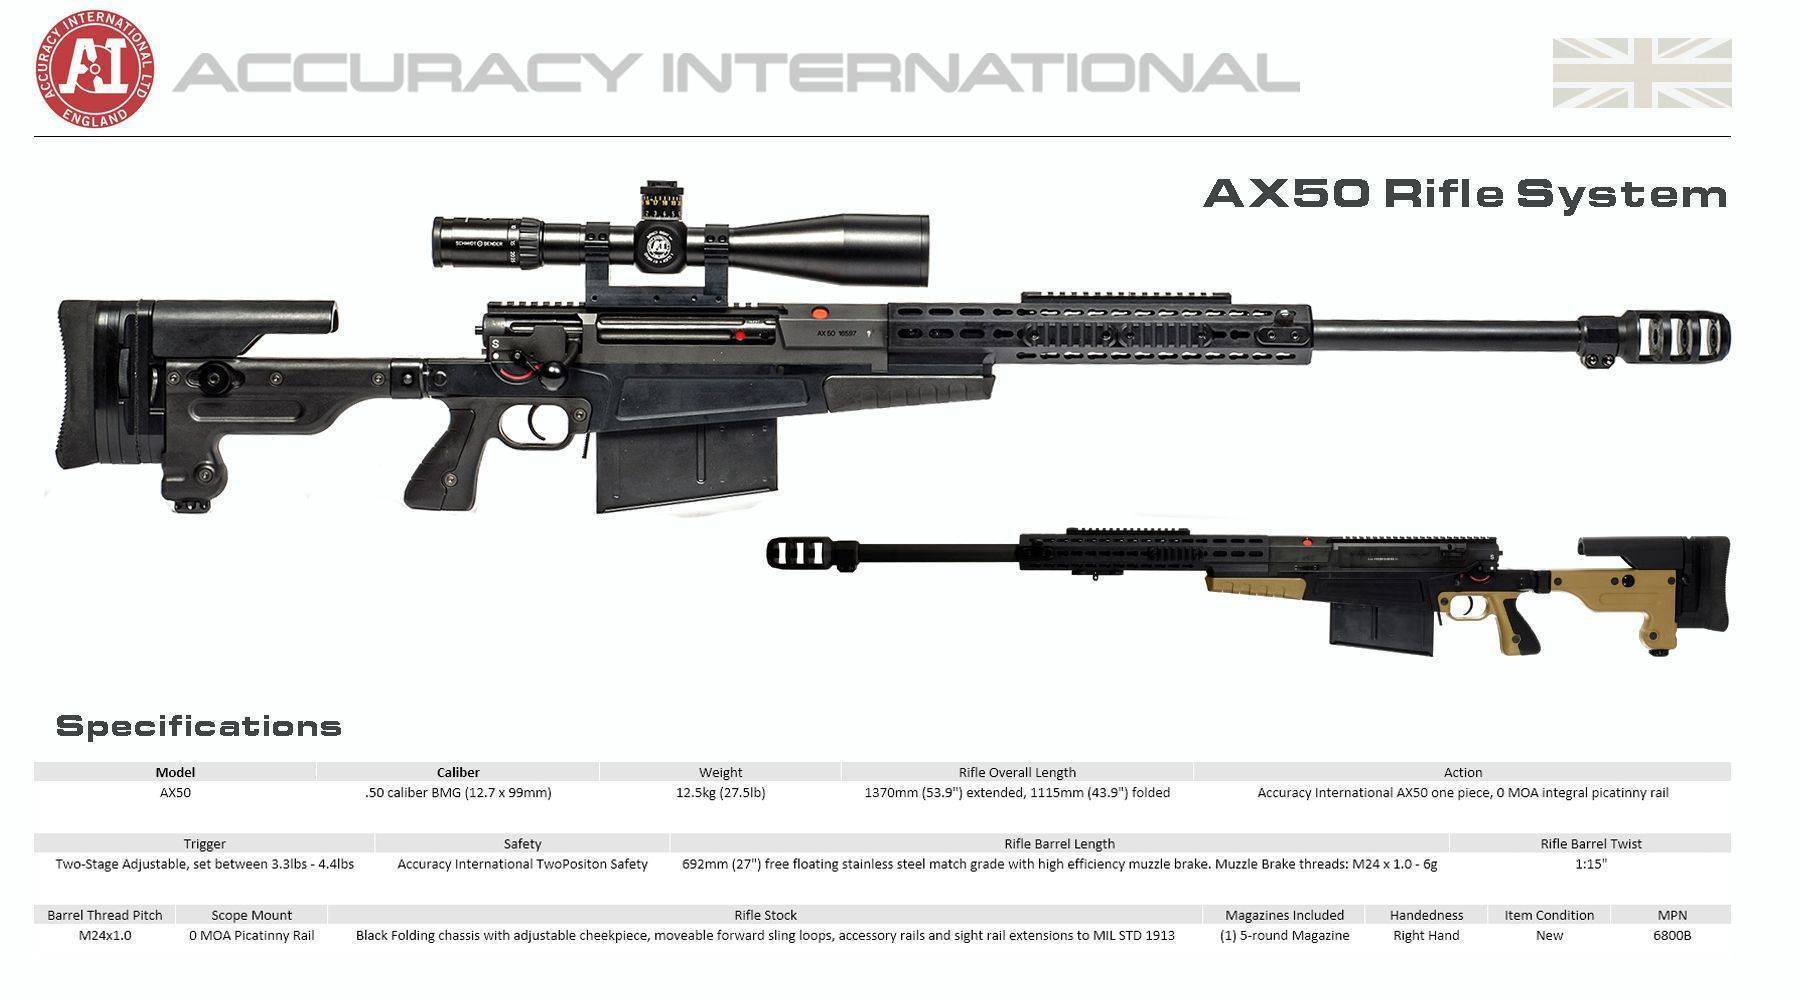 Accuracy international arctic warfare - accuracy international arctic warfare